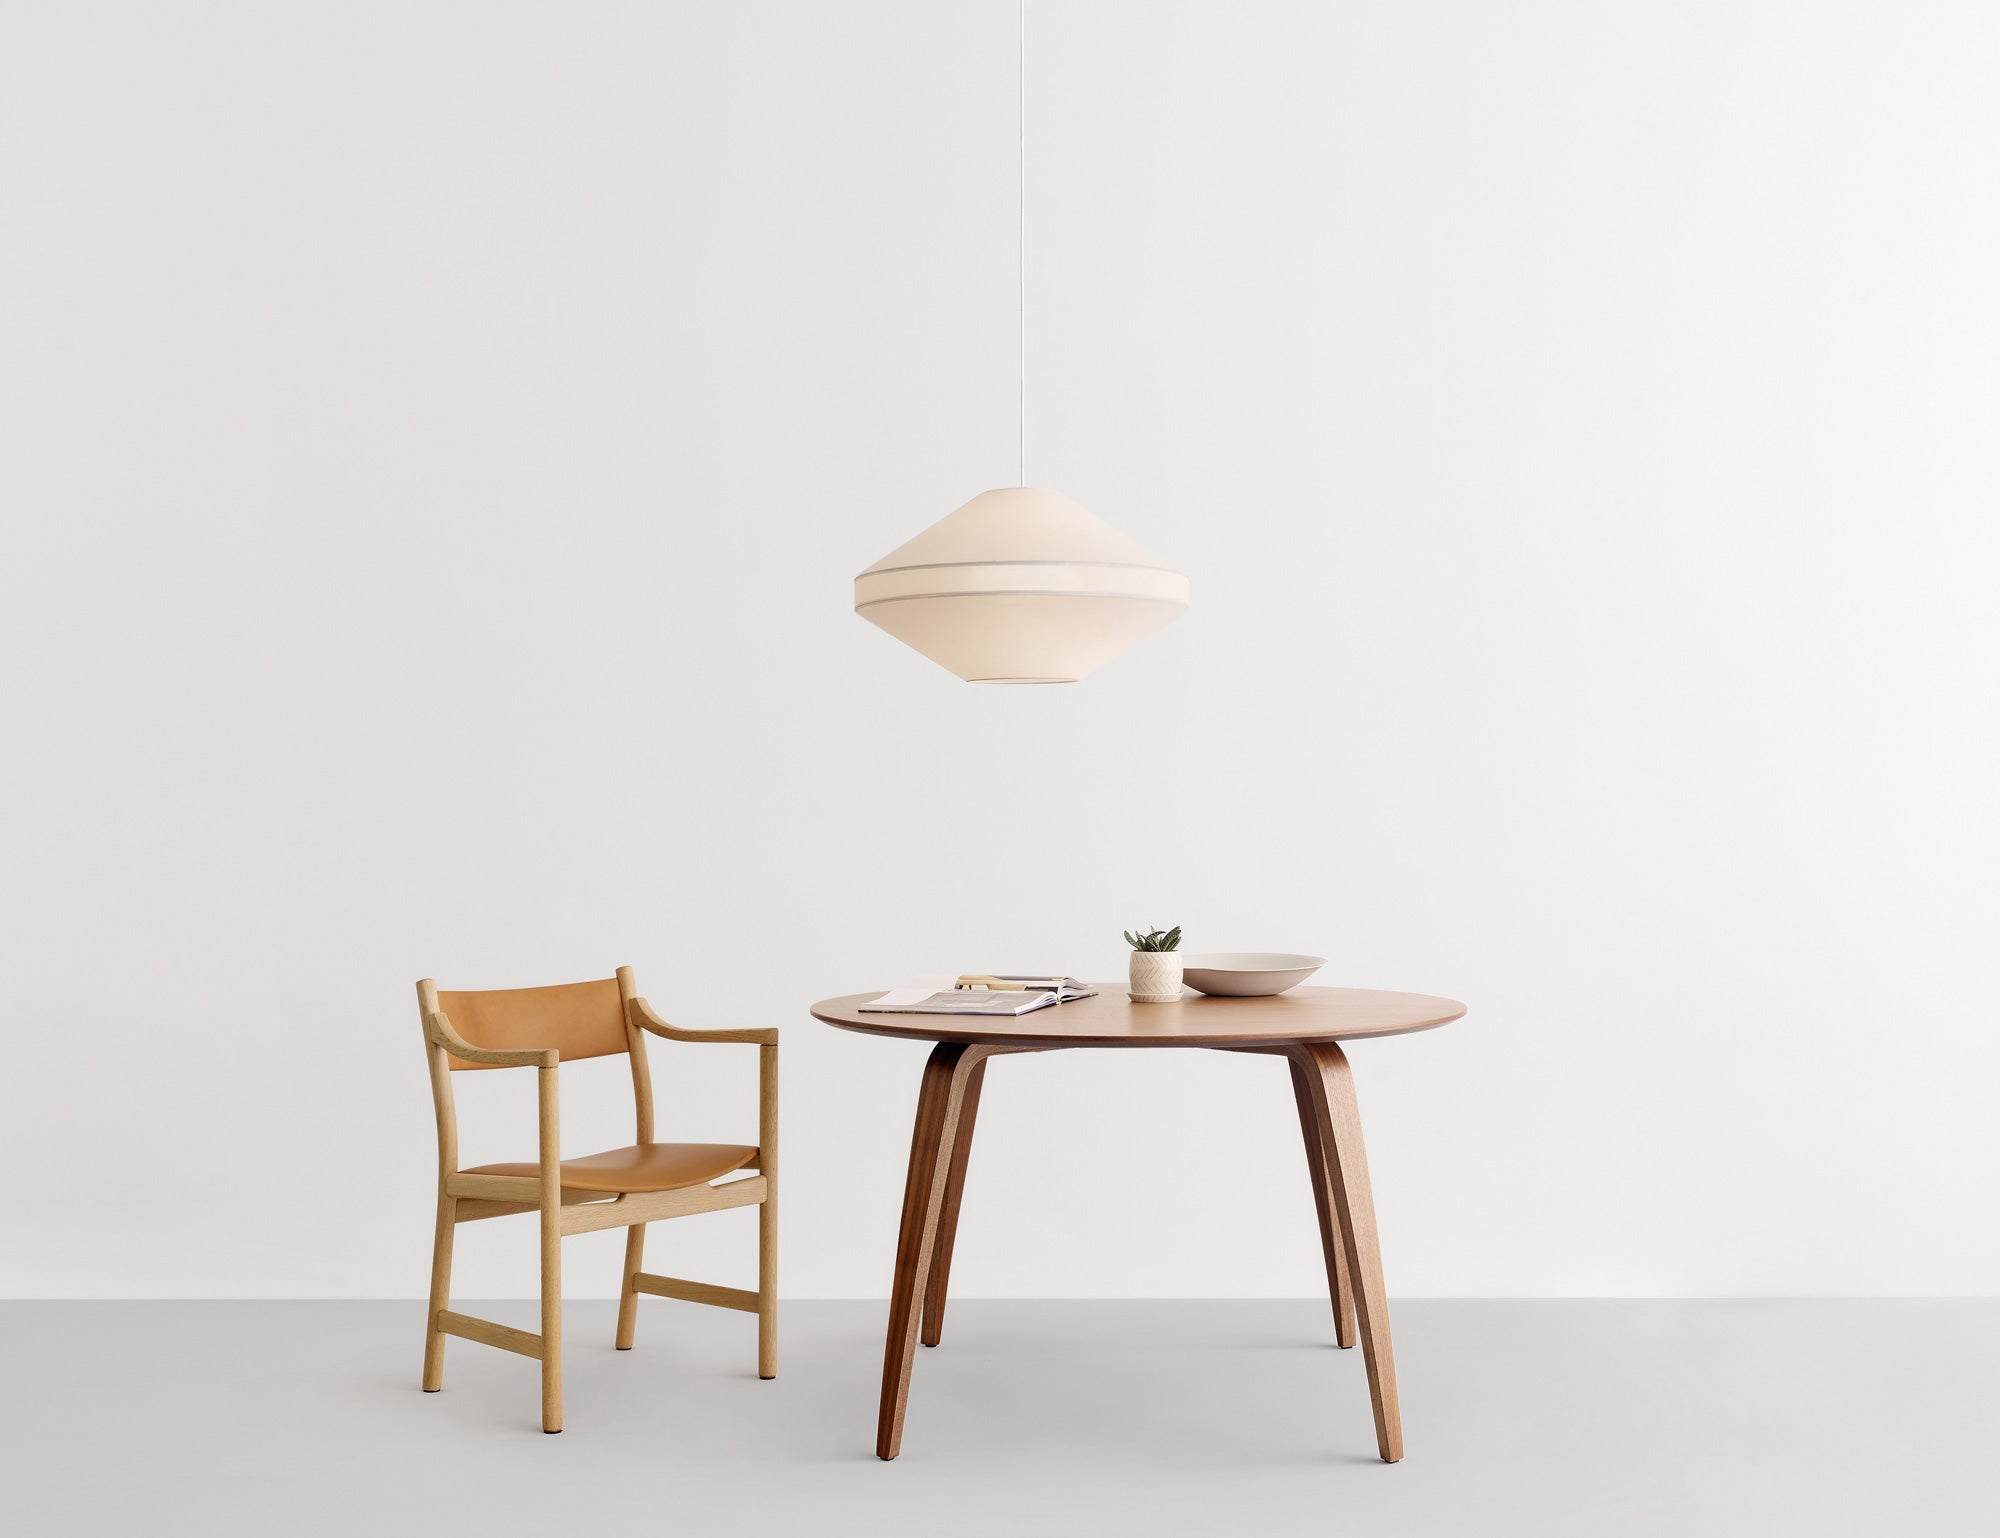 minimalist furniture scandinavian Plyroom